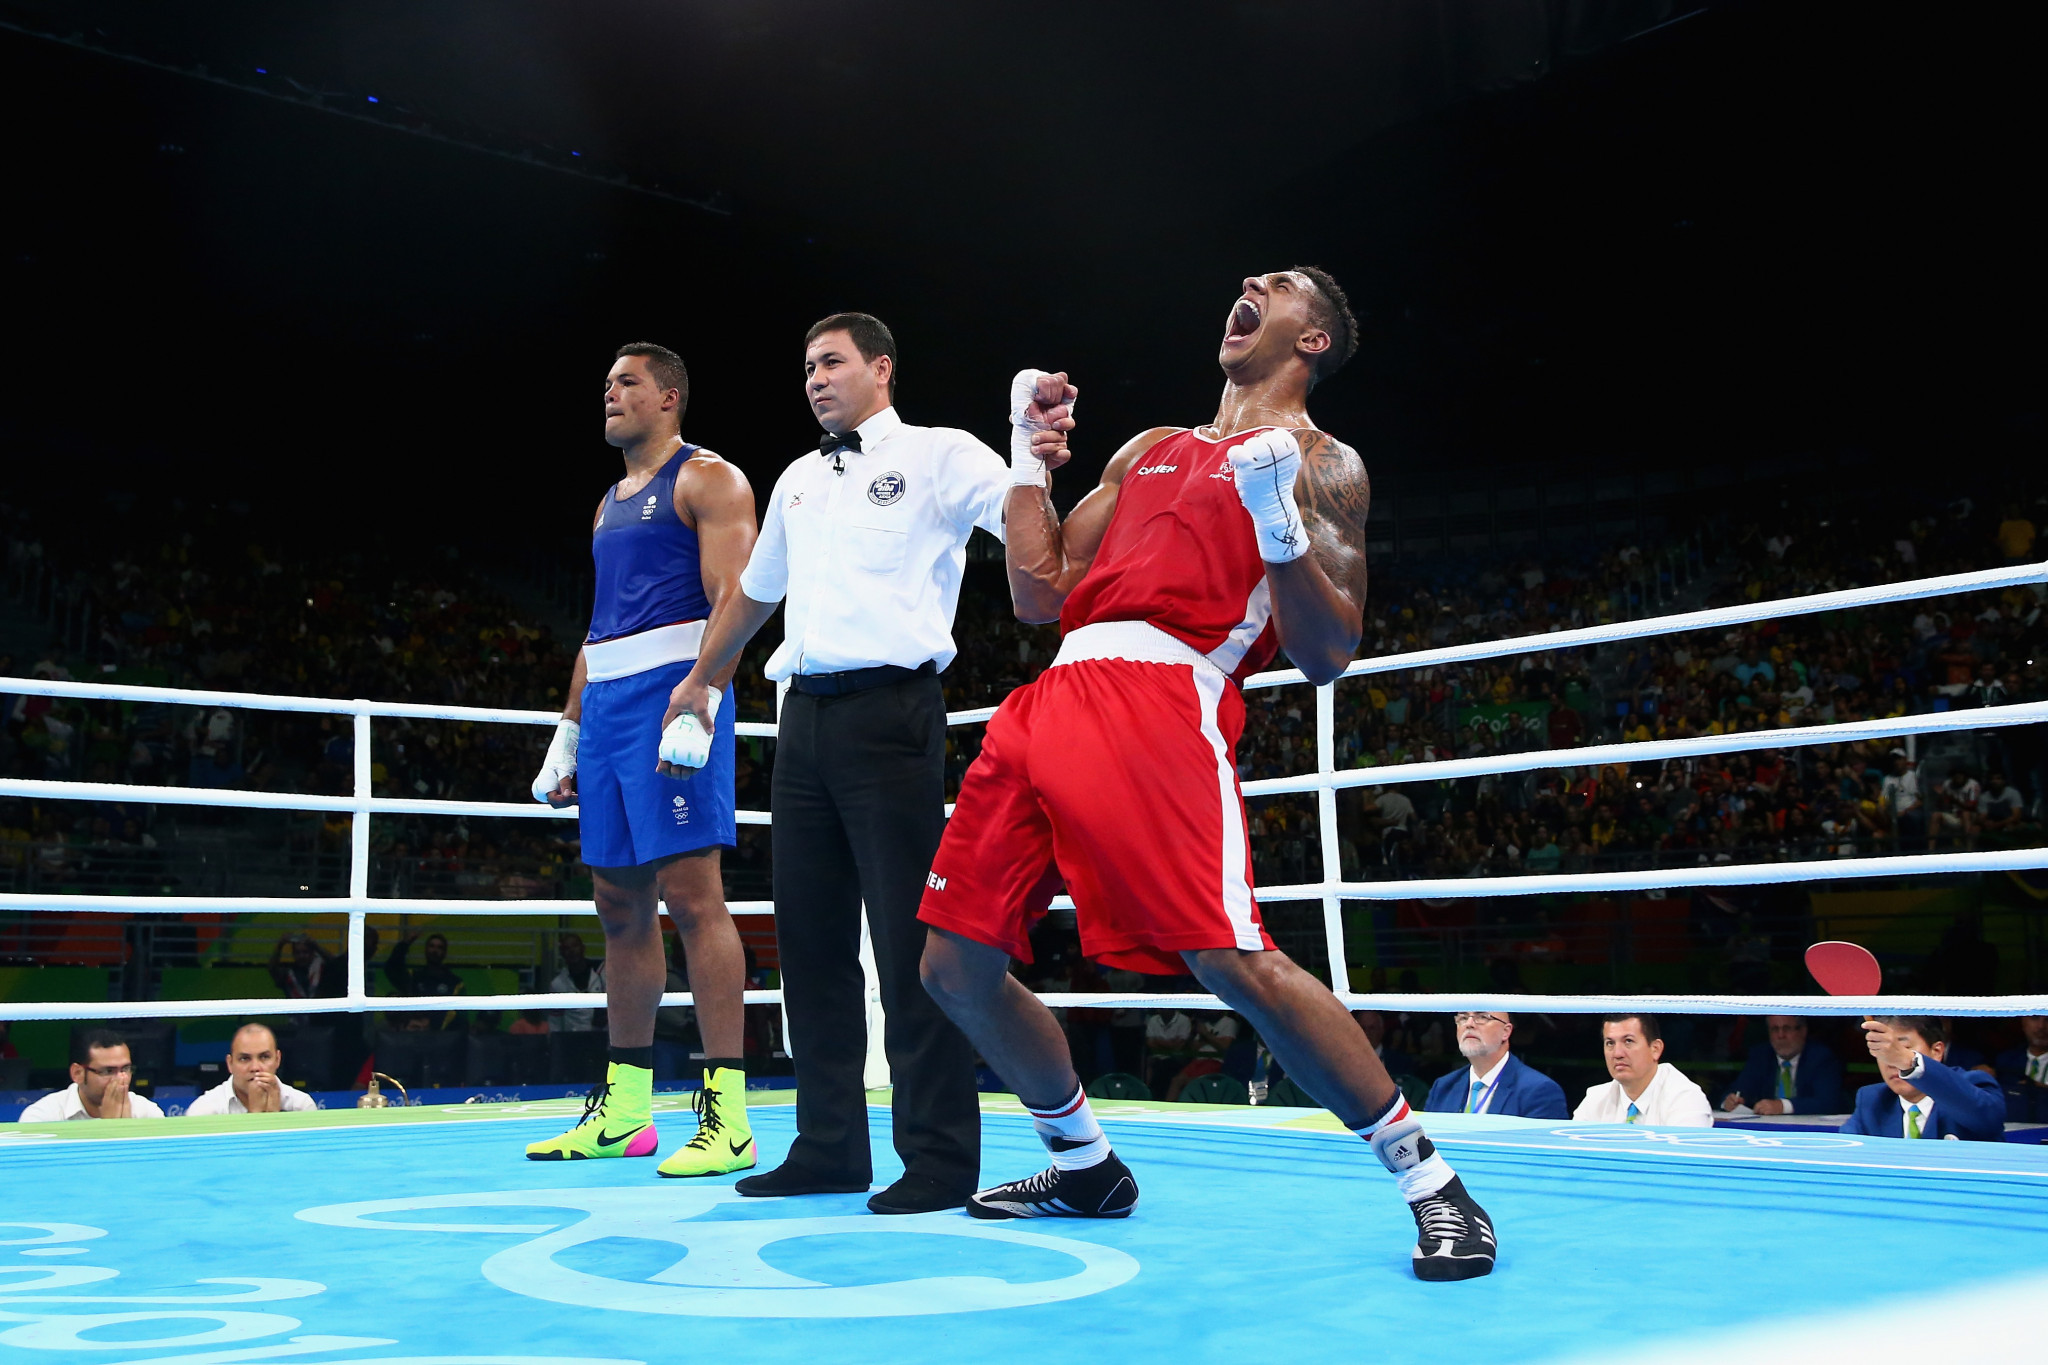 Several fights at the Rio 2016 Olympic Games proved controversial with questions raised over decisions made by judges ©Getty Images